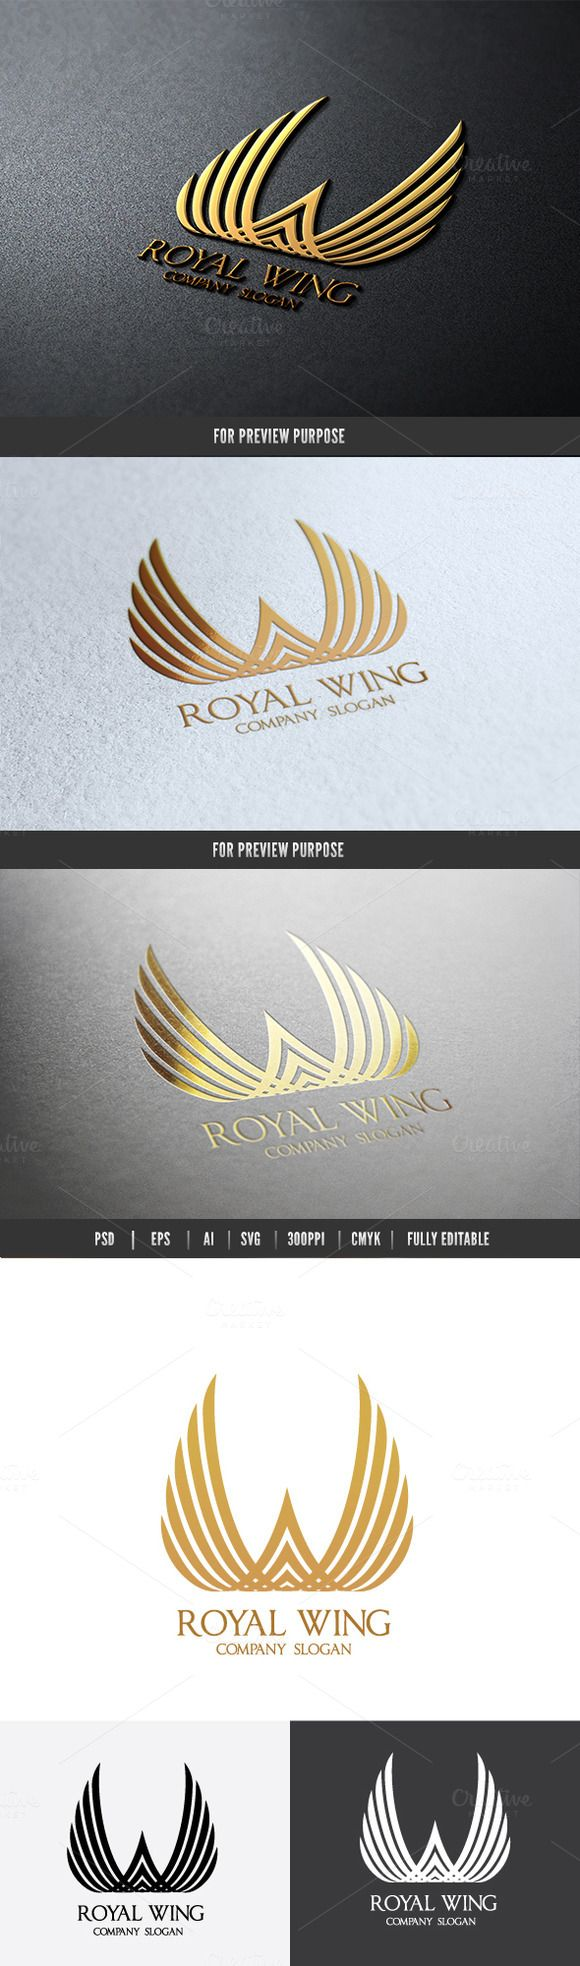 Royal Wing by Super Pig Shop on @creativemarket